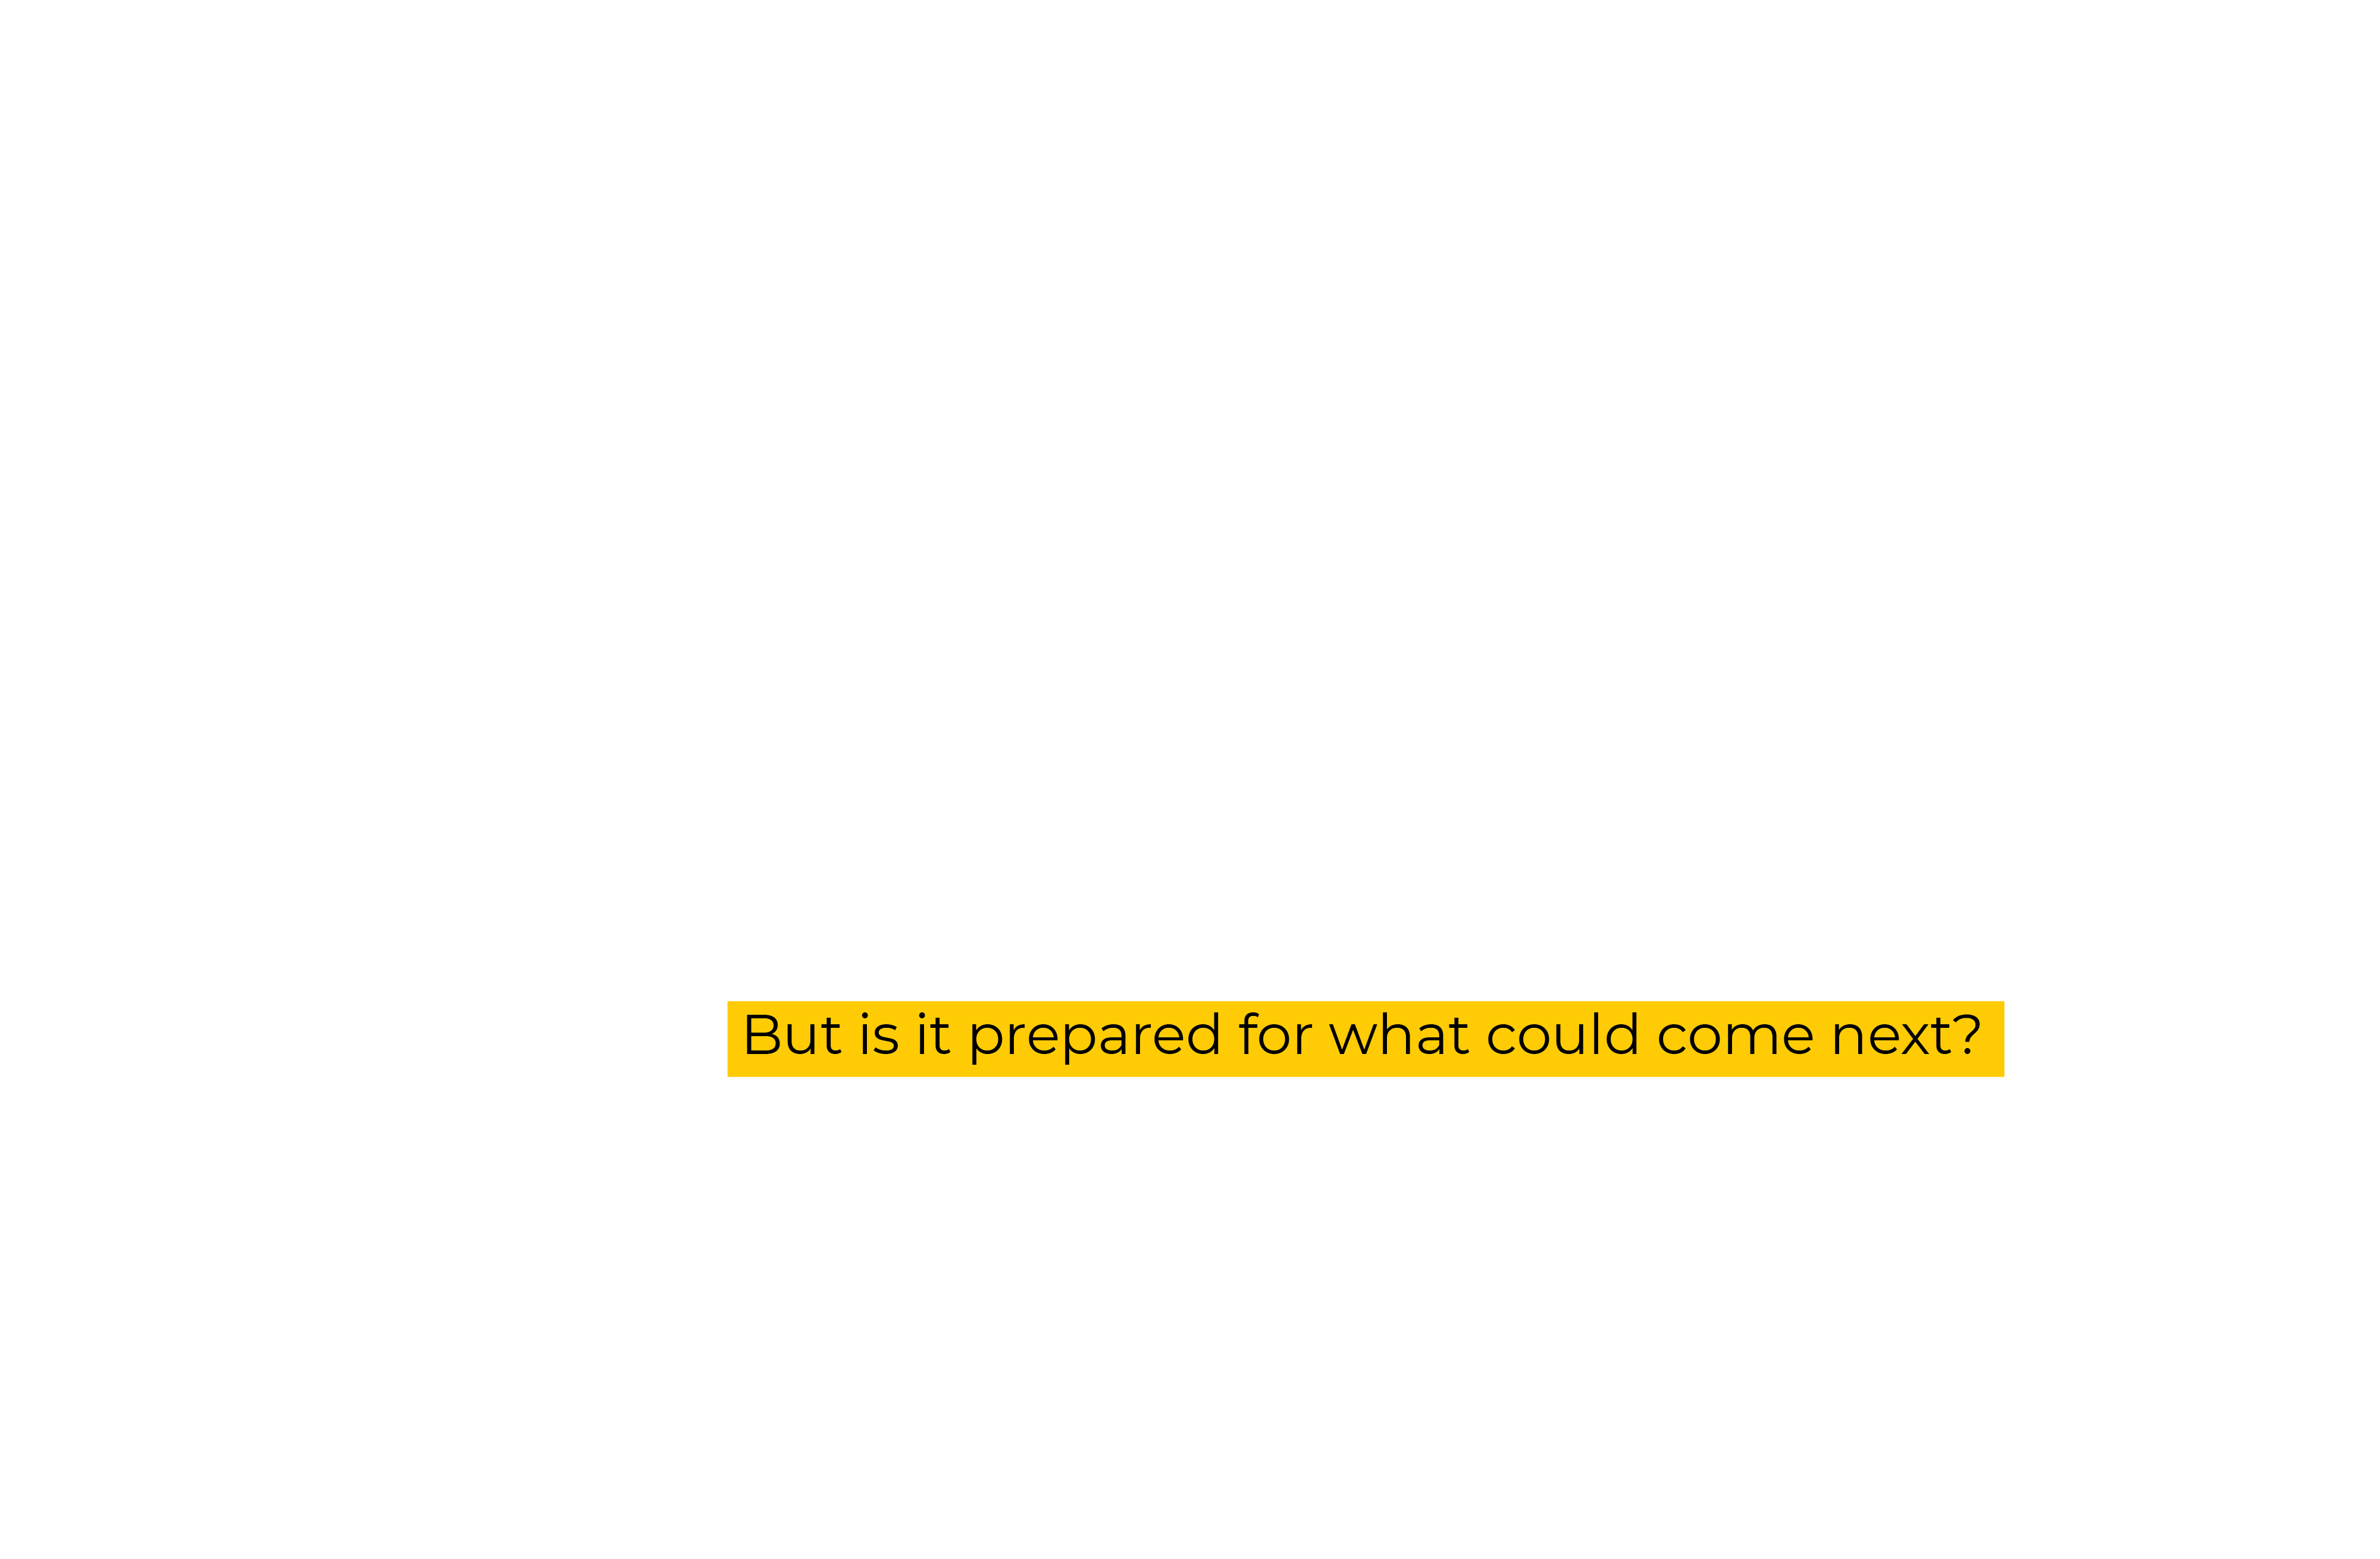 Is the US Ready to Escalate in Cyberspace?